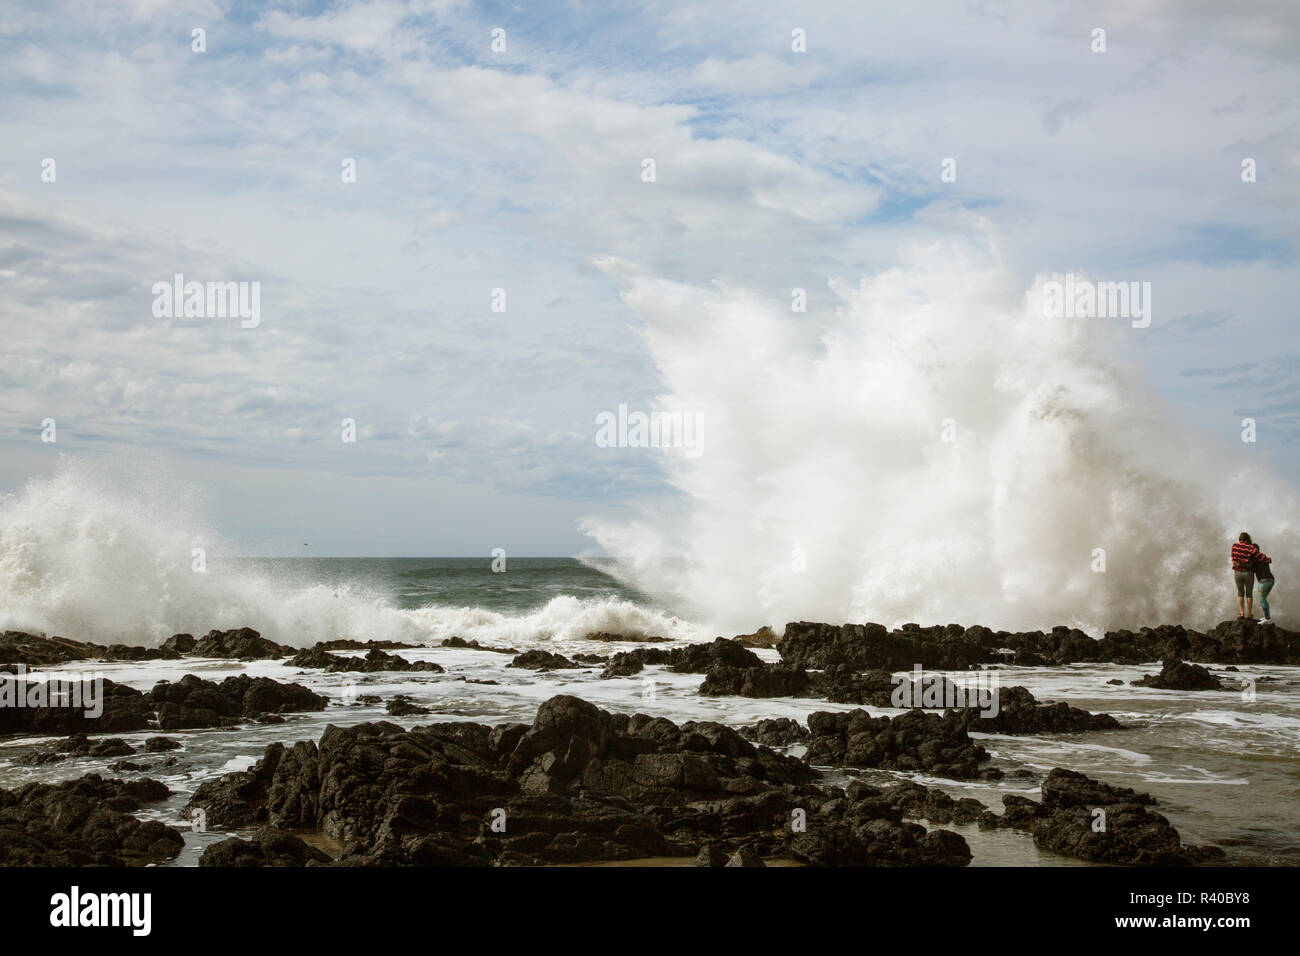 USA, Oregon, Cape Perpetua. Two girls and large wave. Credit as: Don Grall / Jaynes Gallery / DanitaDelimont. com - Stock Image